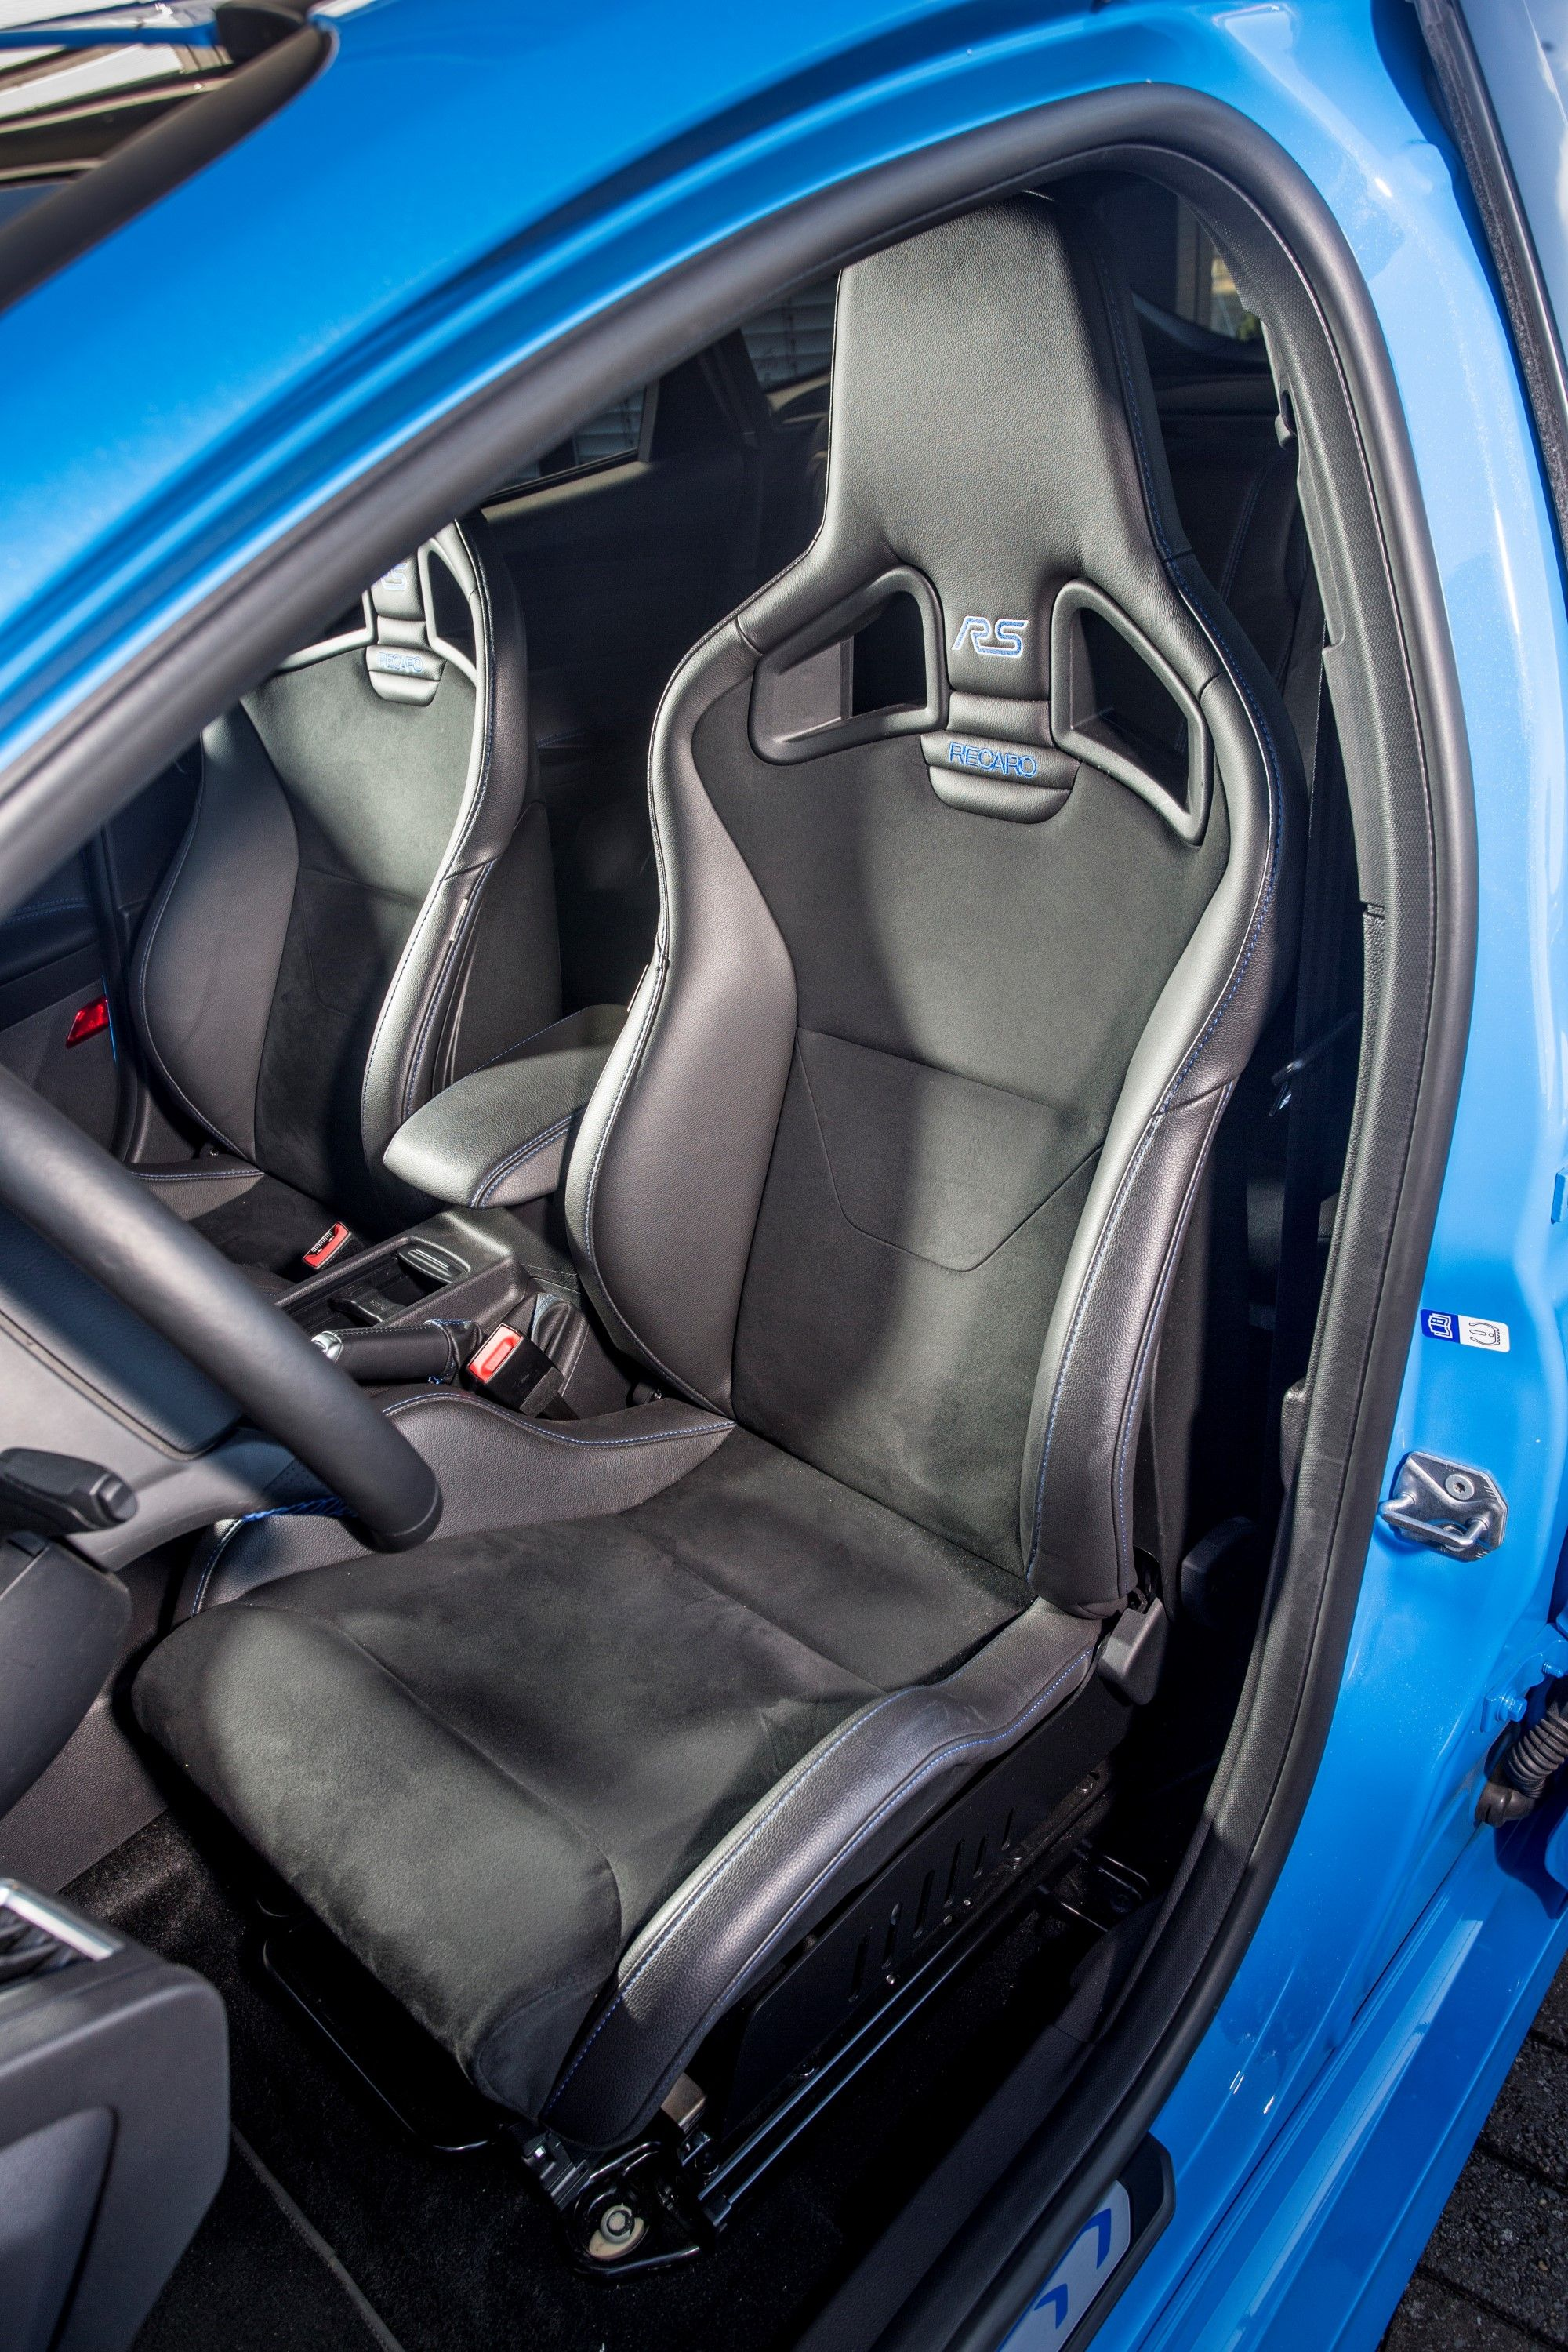 2016 Ford Focus RS Recaro shell seat Ford focus, Focus